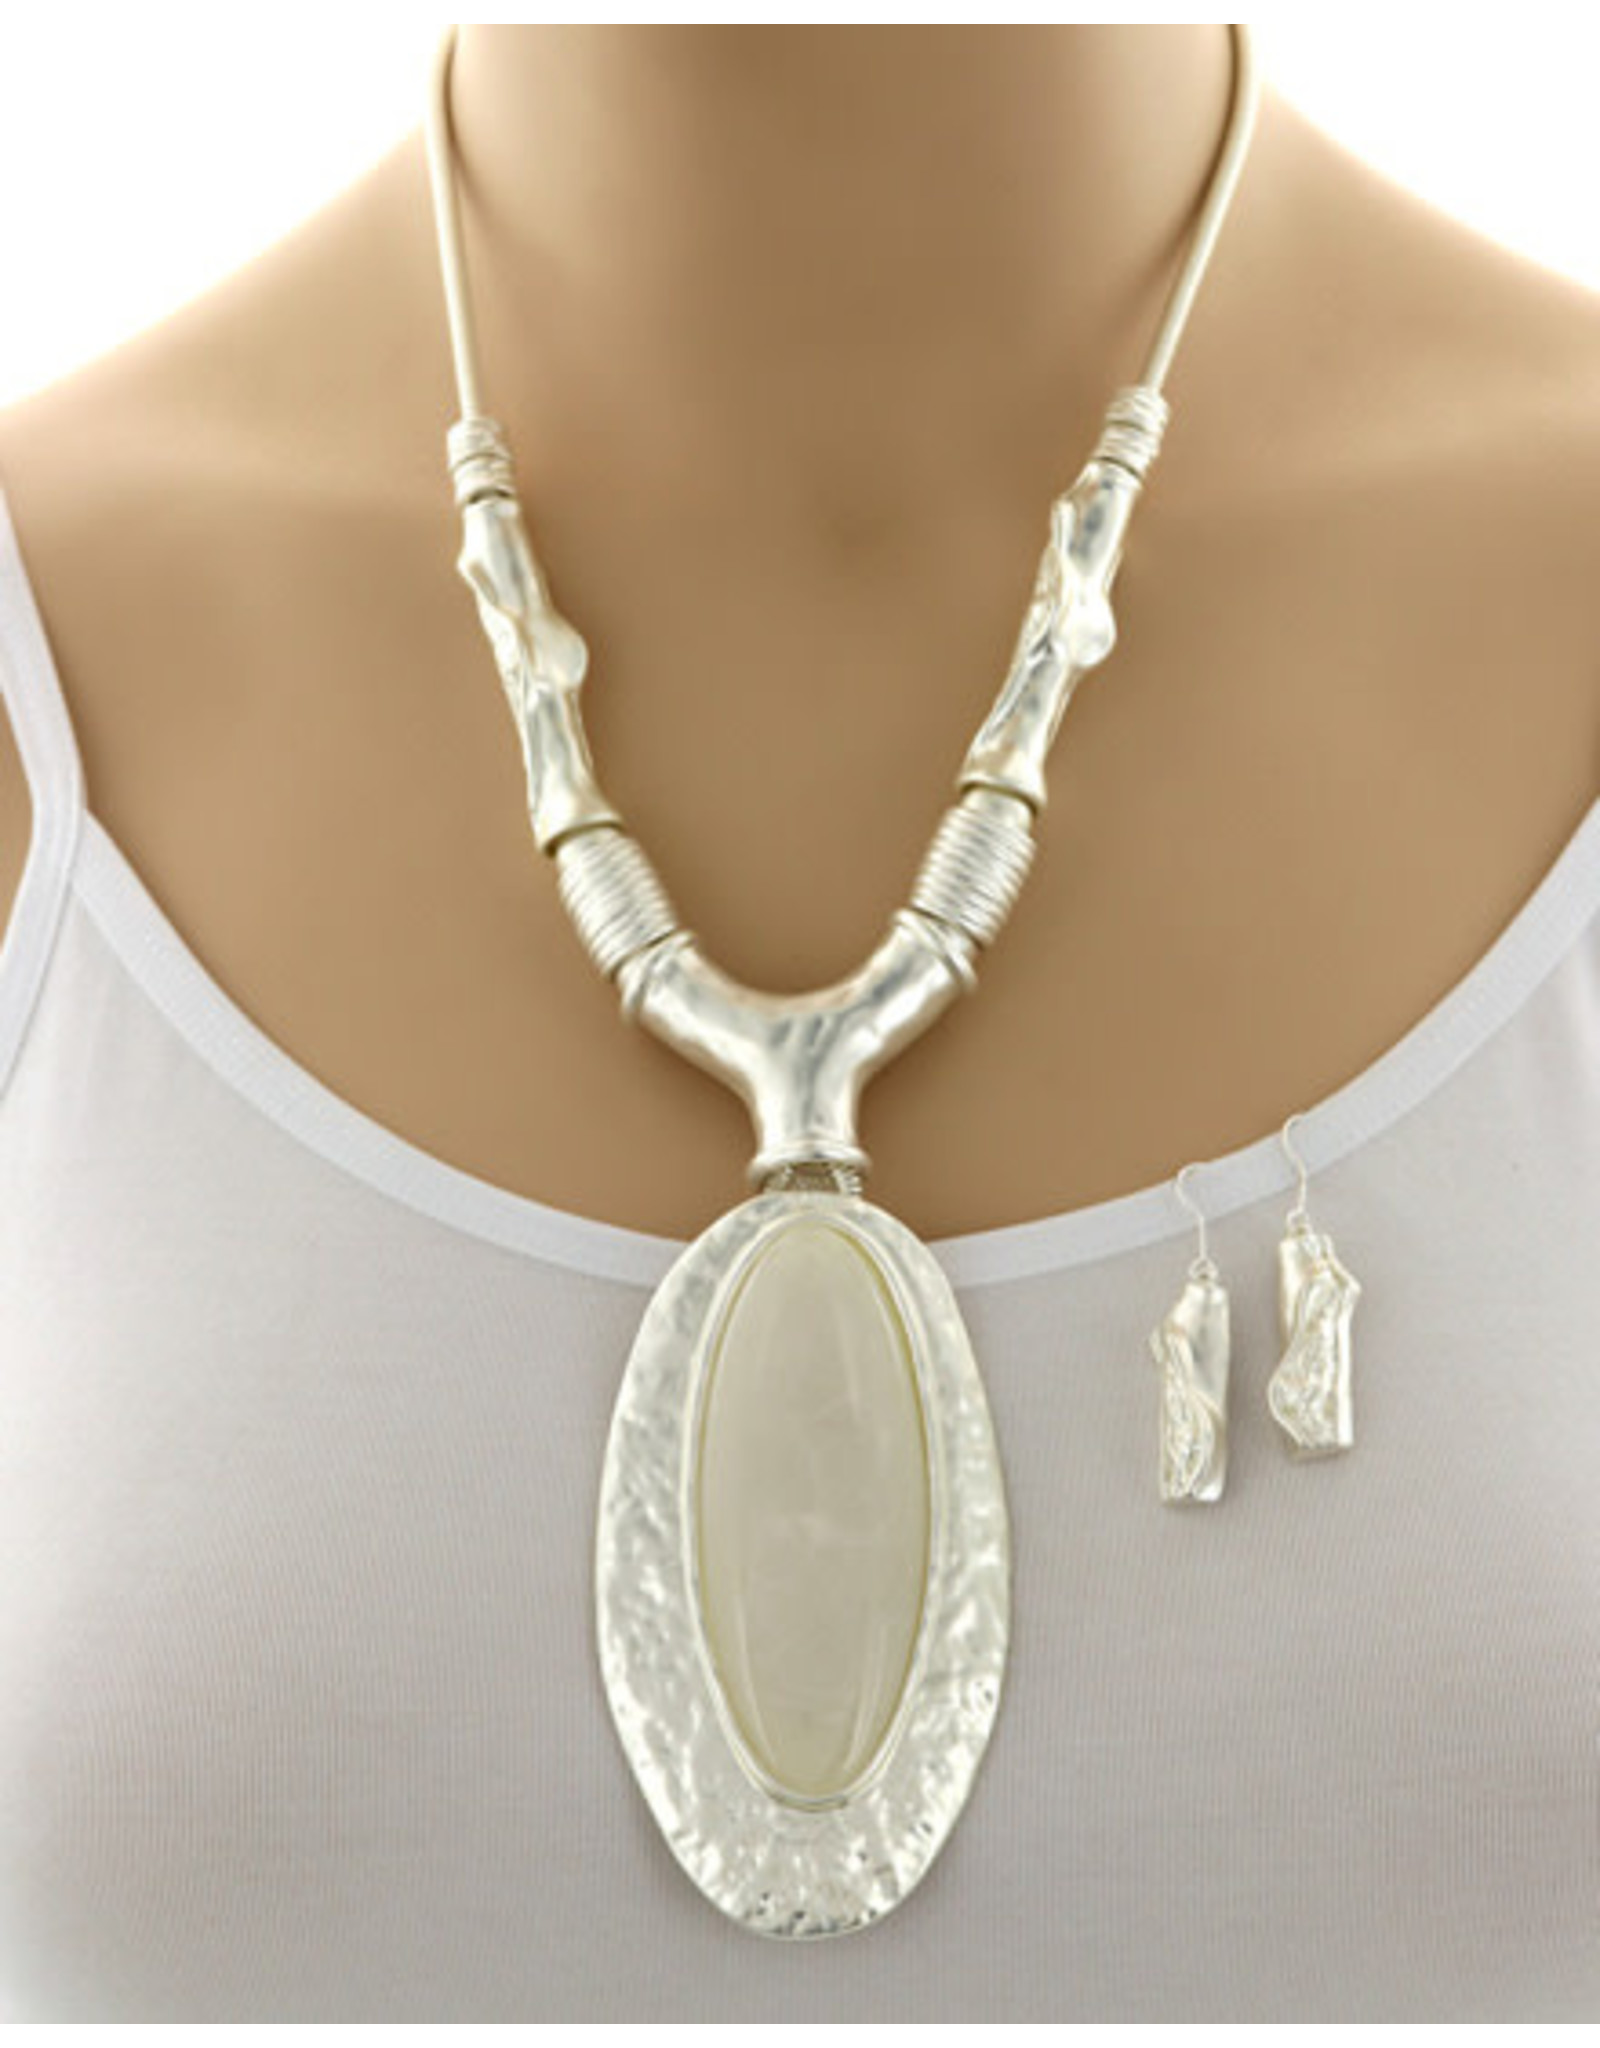 Large Acrylic Pendate Necklace and Earring Set